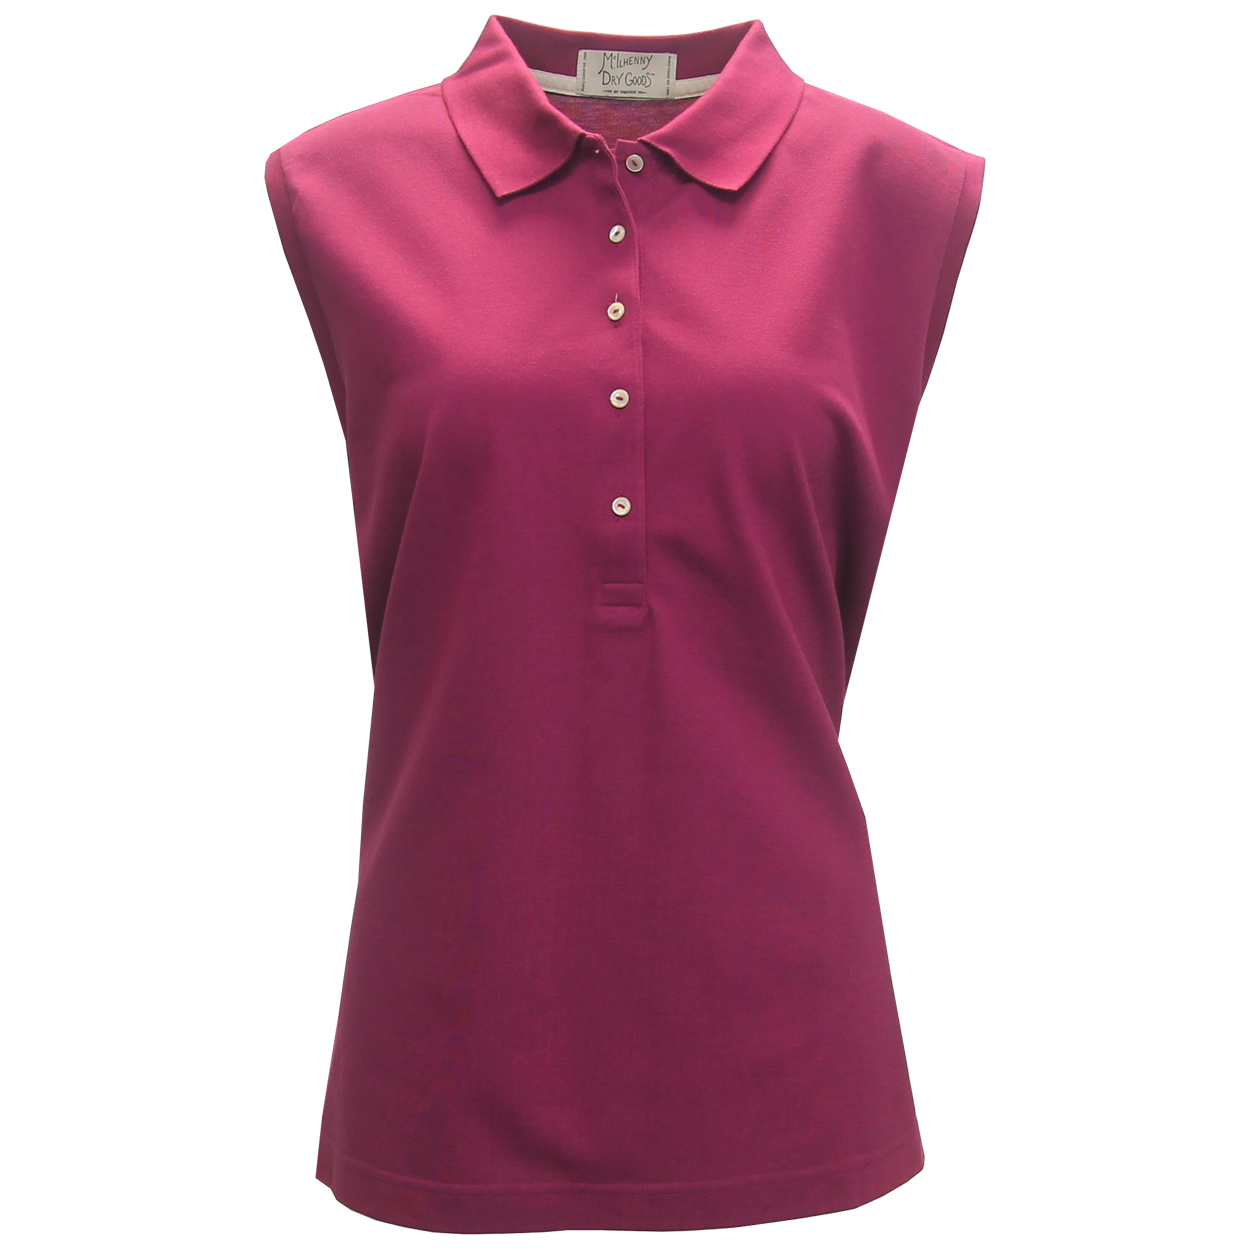 McIlhenny Women's Sleeveless...